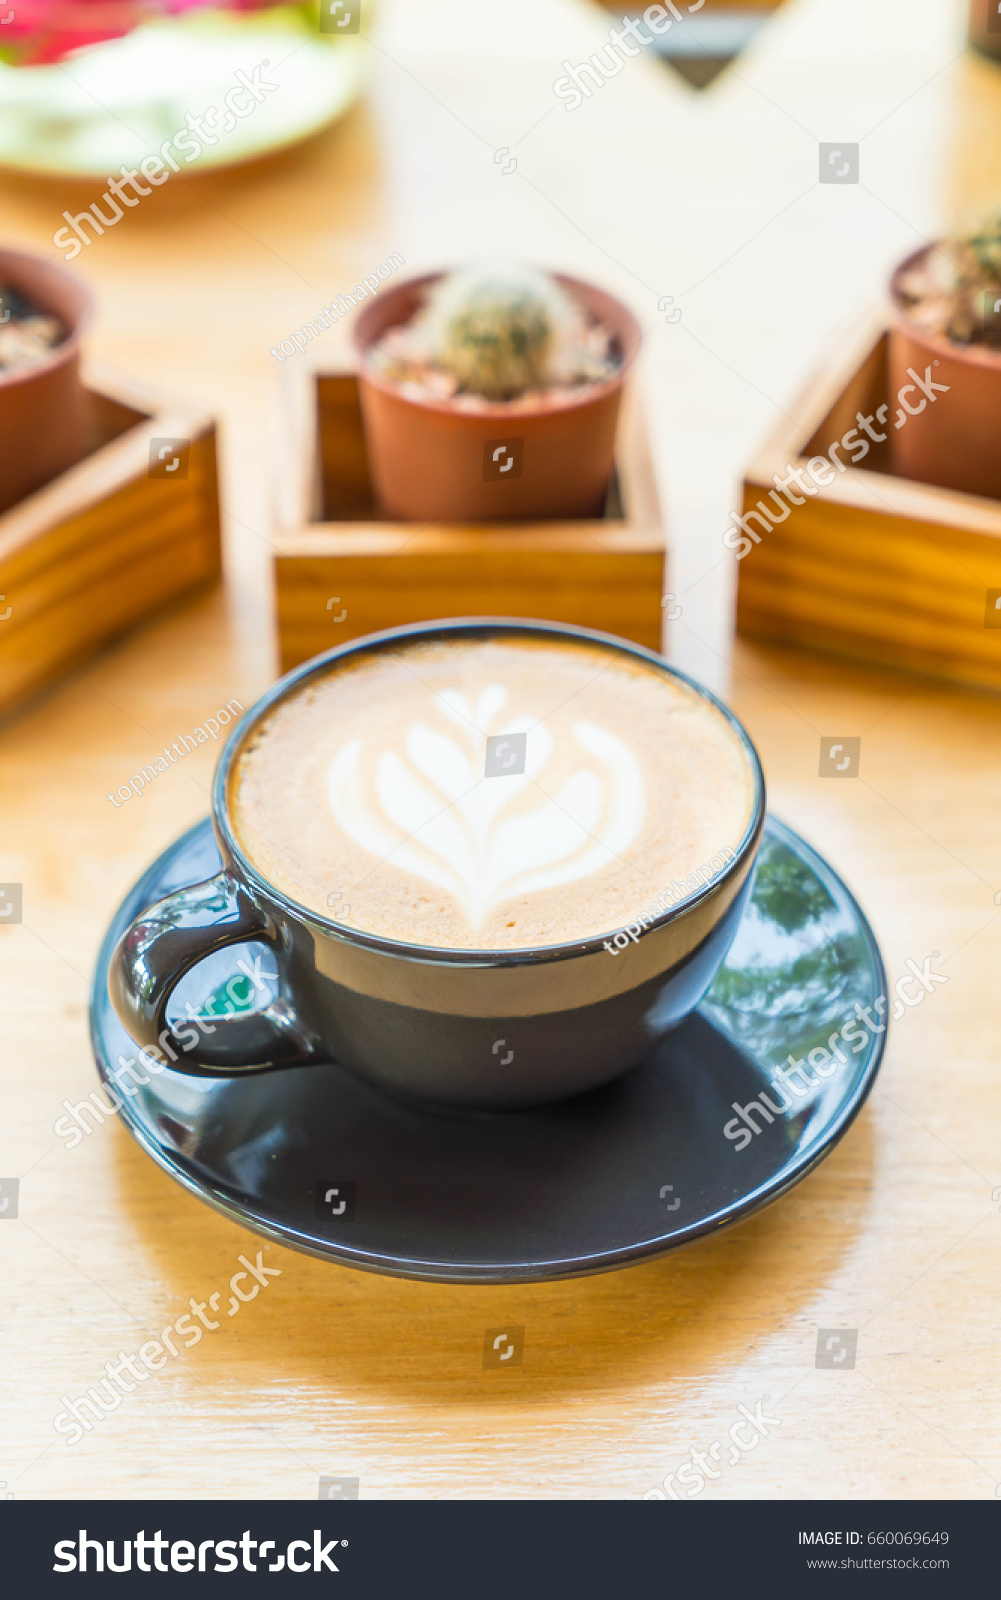 Hot latte coffee cup on table stock photo 660069649 shutterstock hot latte coffee cup on table geotapseo Gallery